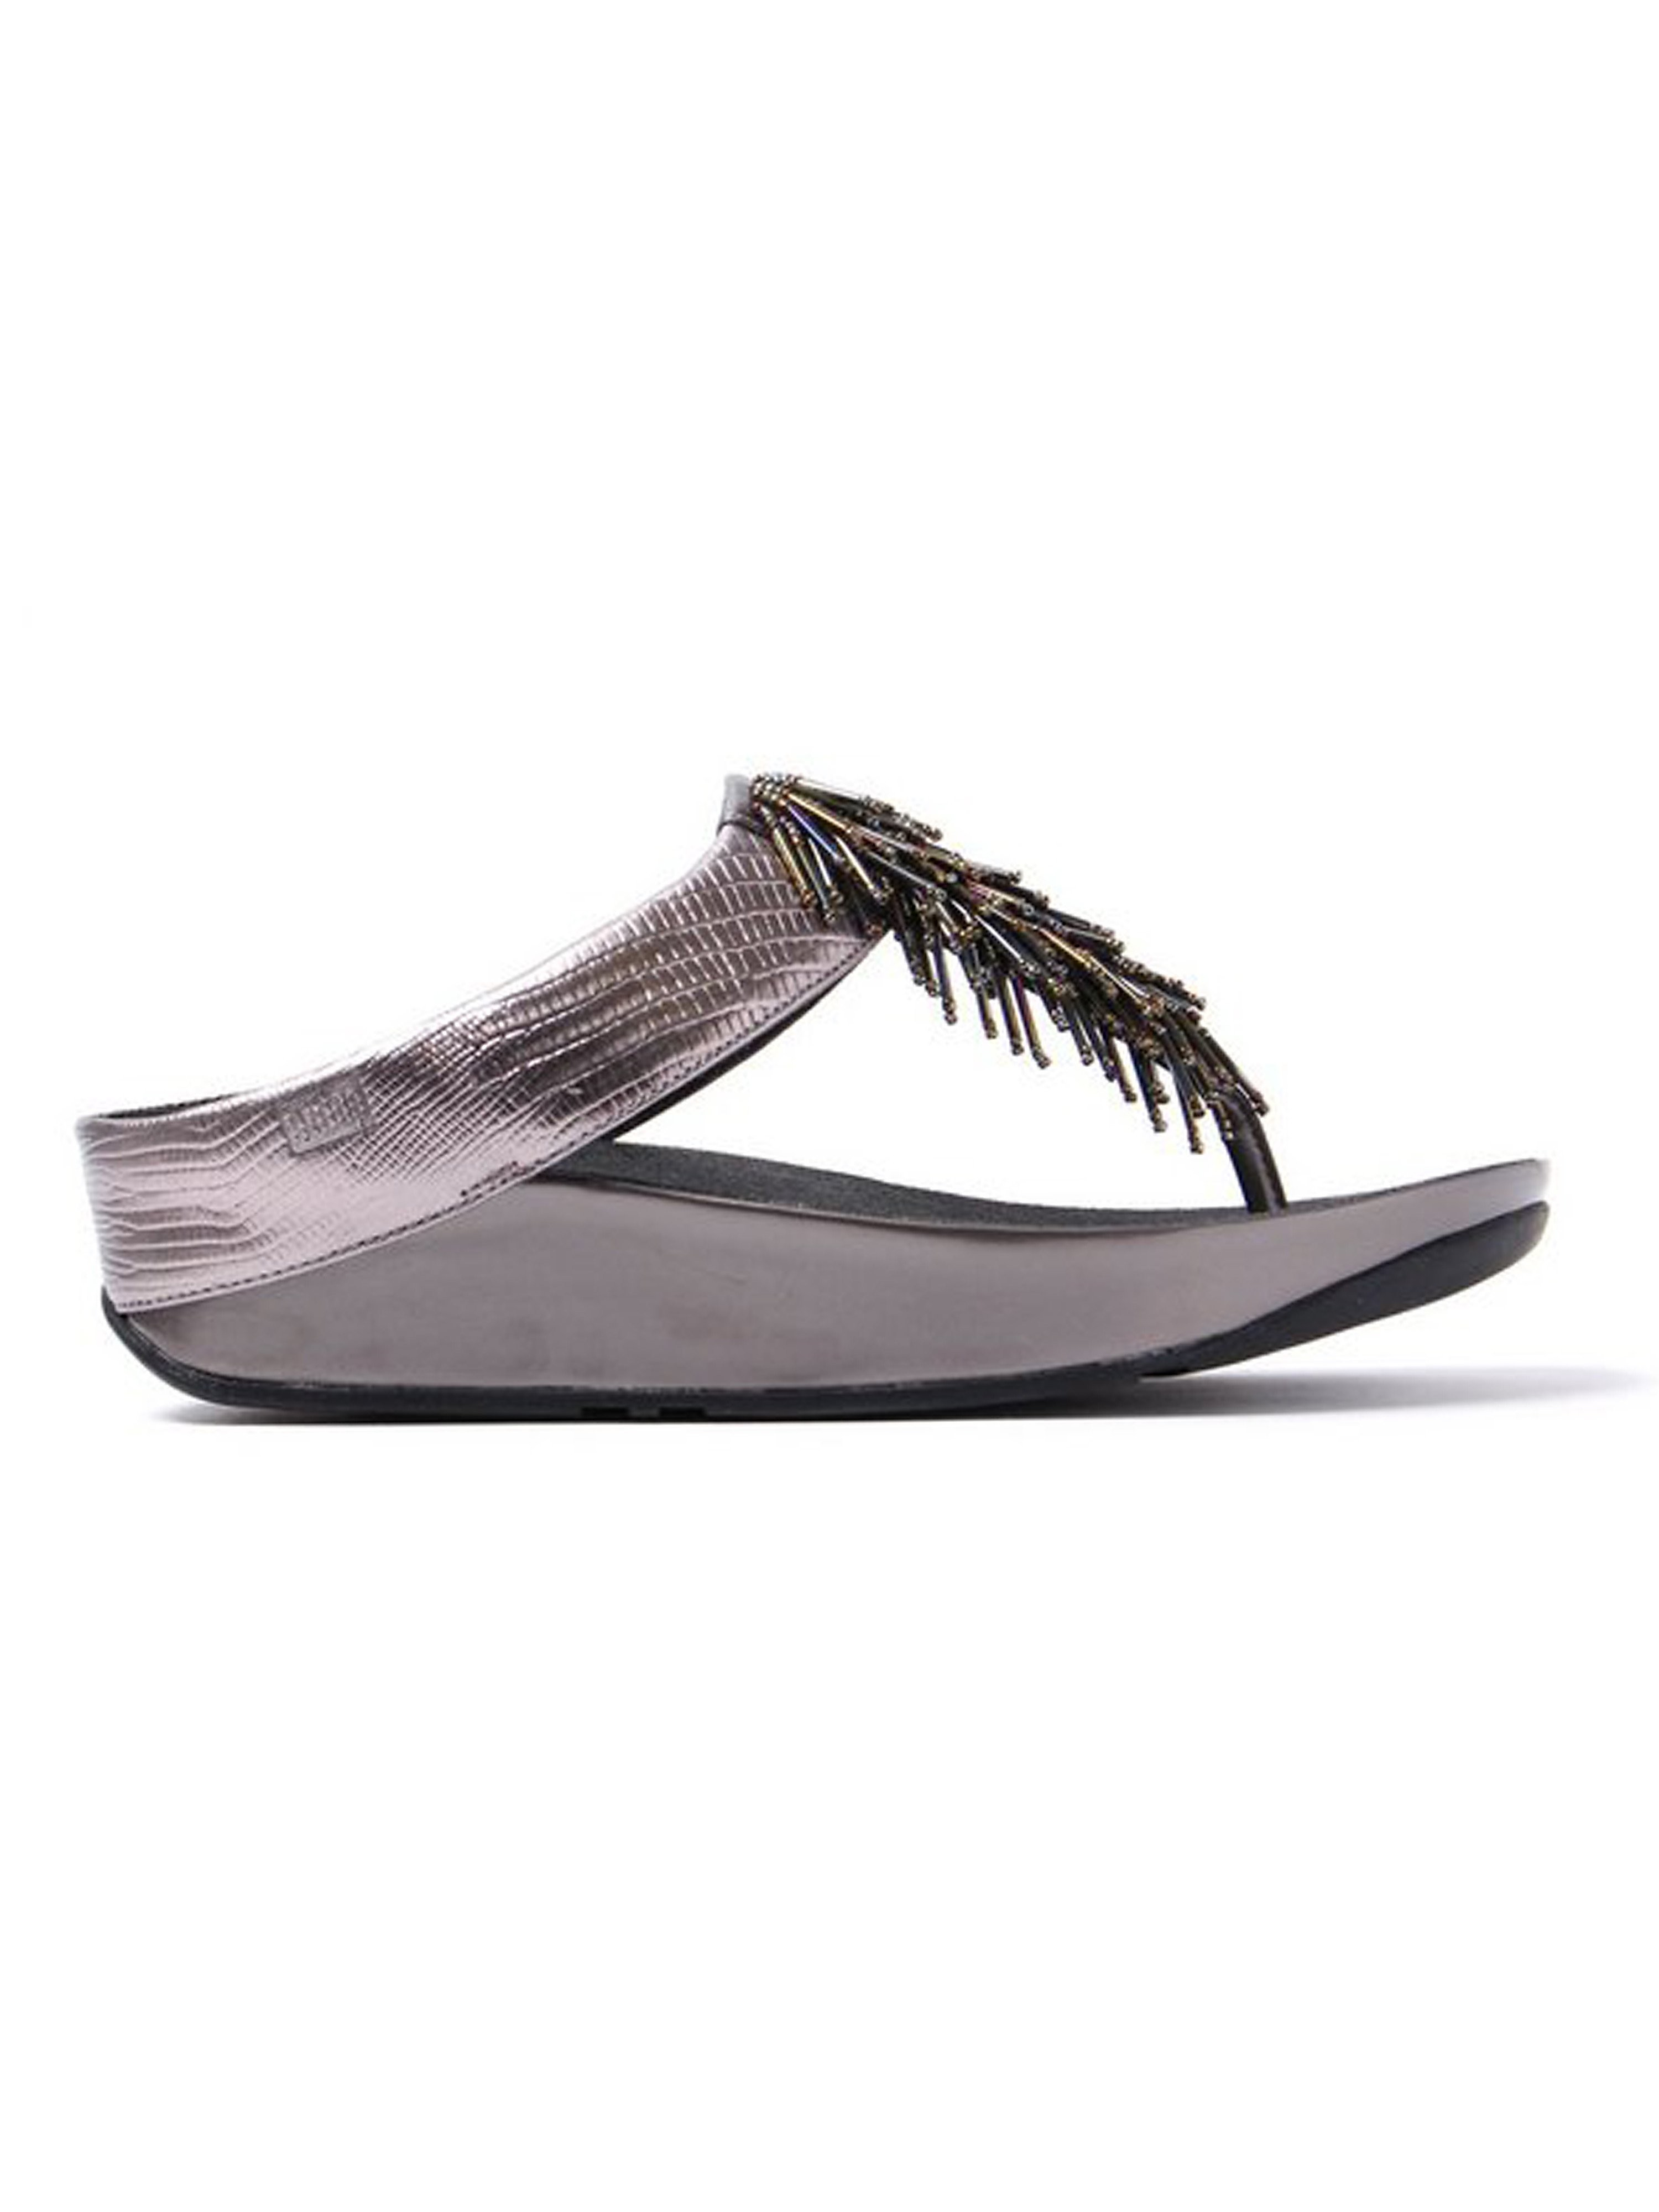 FitFlop Women's Cha Cha Leather Beaded Toe-Post Sandals - Nimbus Silver